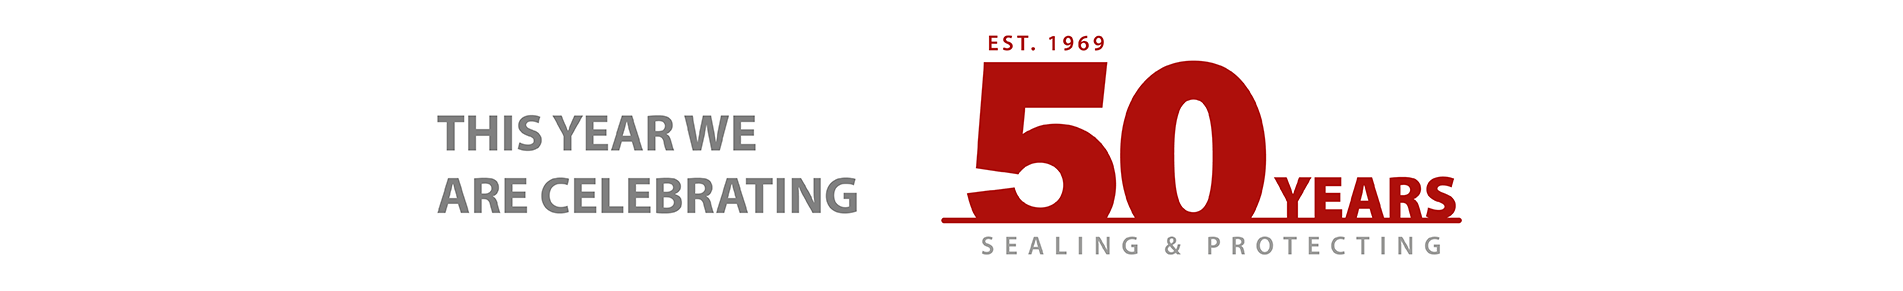 Reddiplex Sealing and Protect 50 years